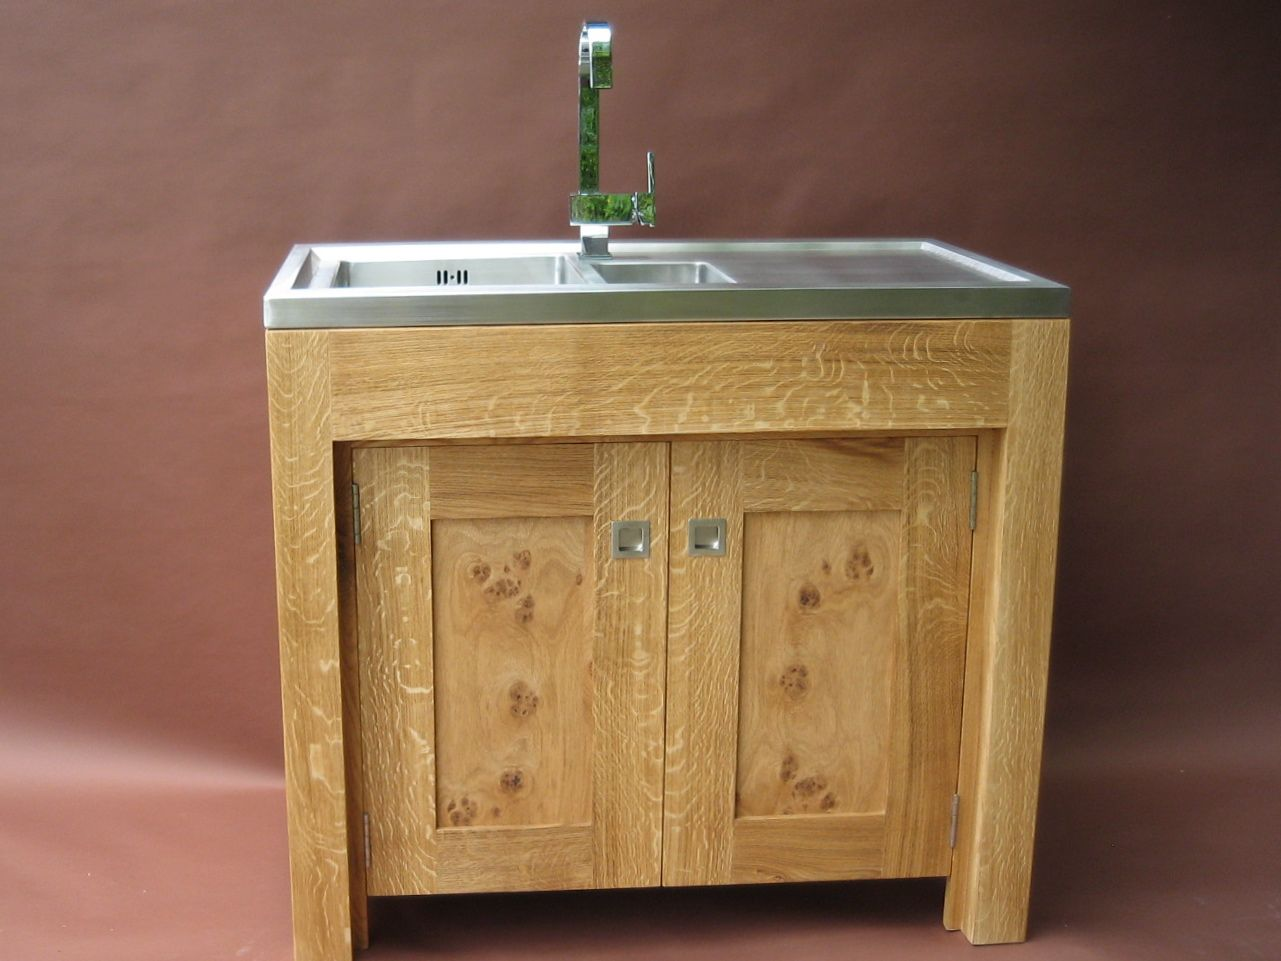 Freestanding Sink : pippy oak freestanding sink unit Handmades by Lulu @ mimishouse ...